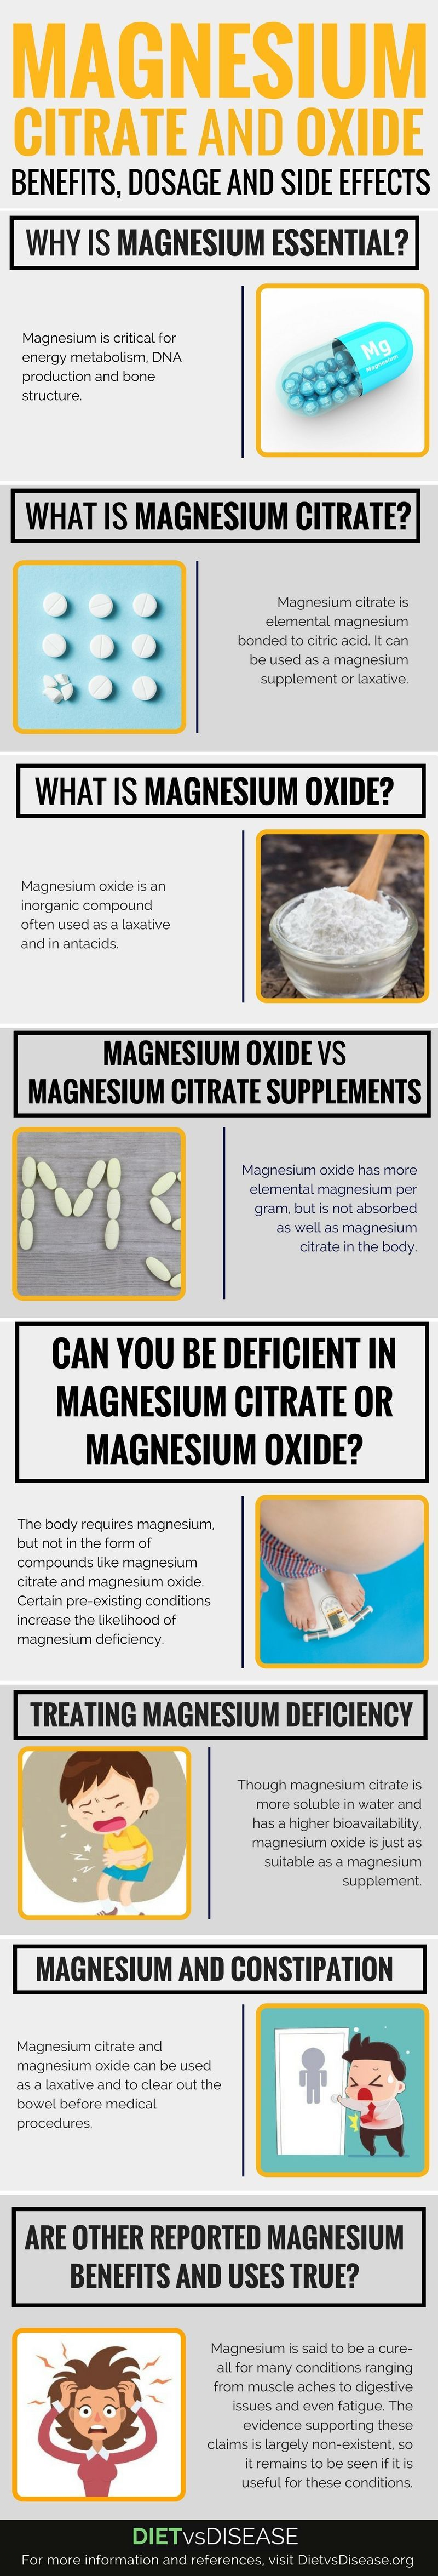 Magnesium is an essential mineral thought to several potential health benefits